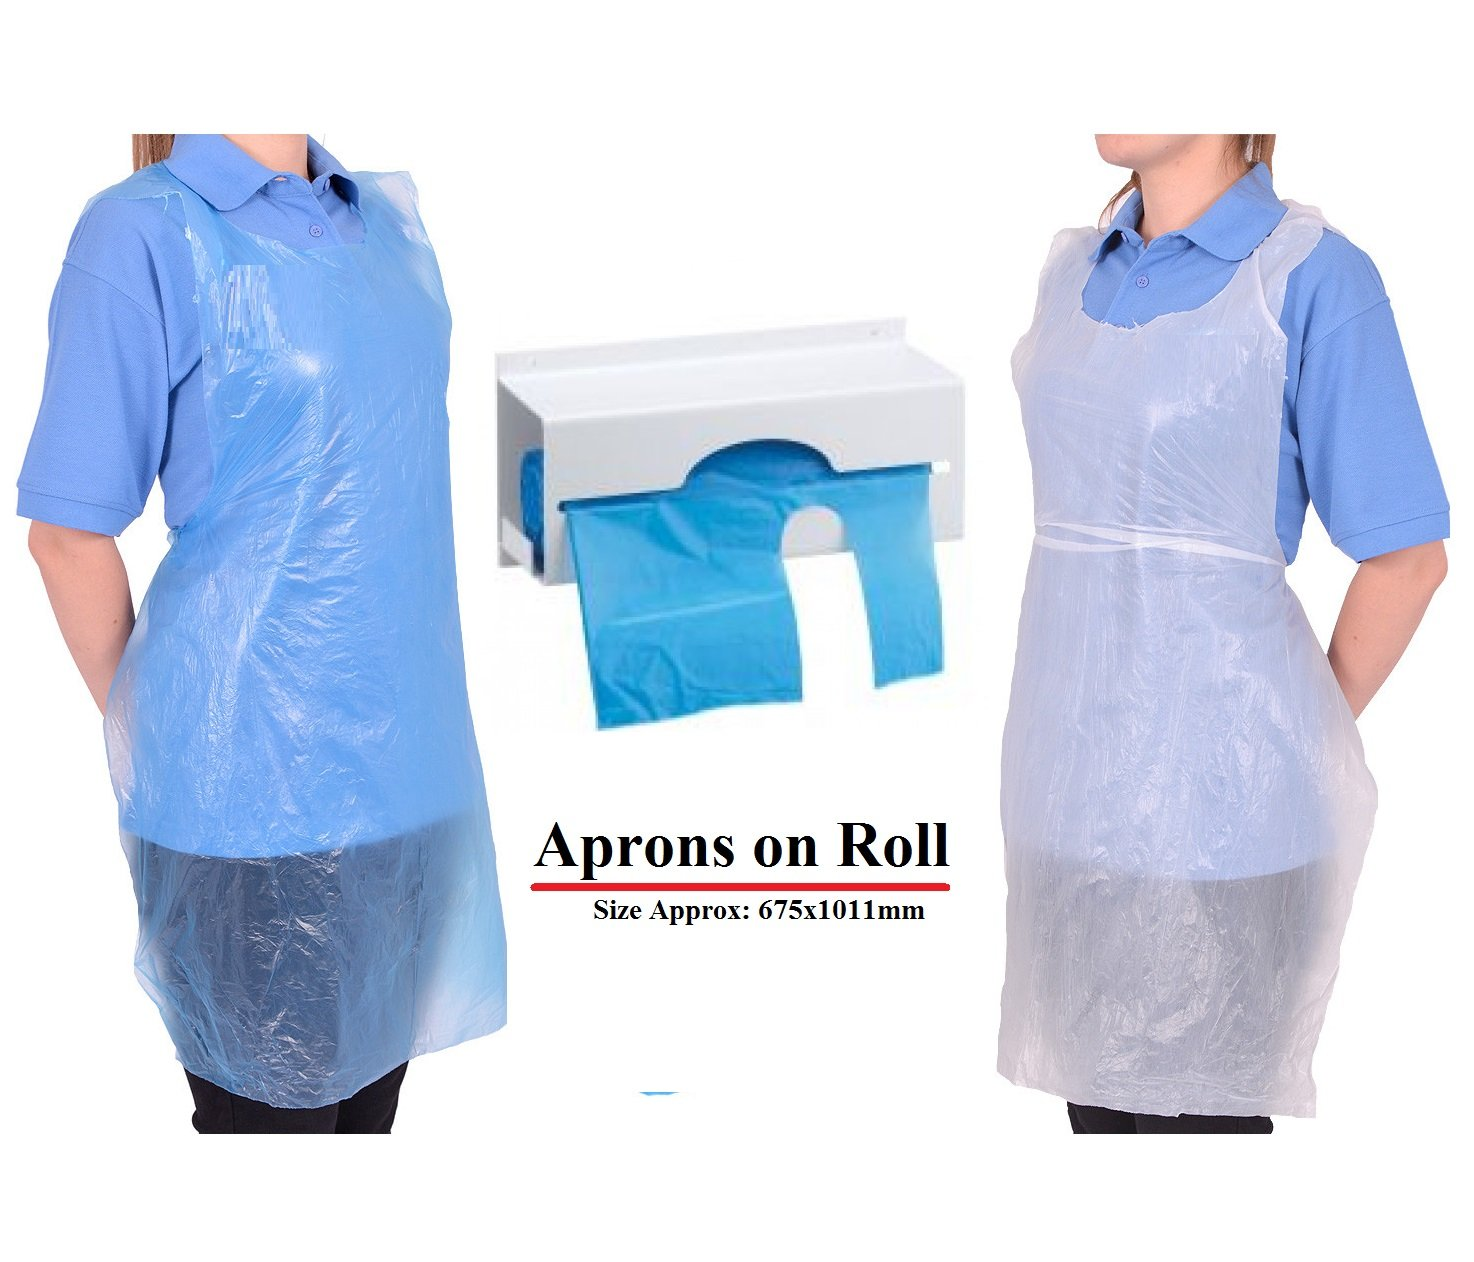 1000 Aprons, Blue Disposable Aprons on Roll White Aprons Blue Apron High Density Polythene